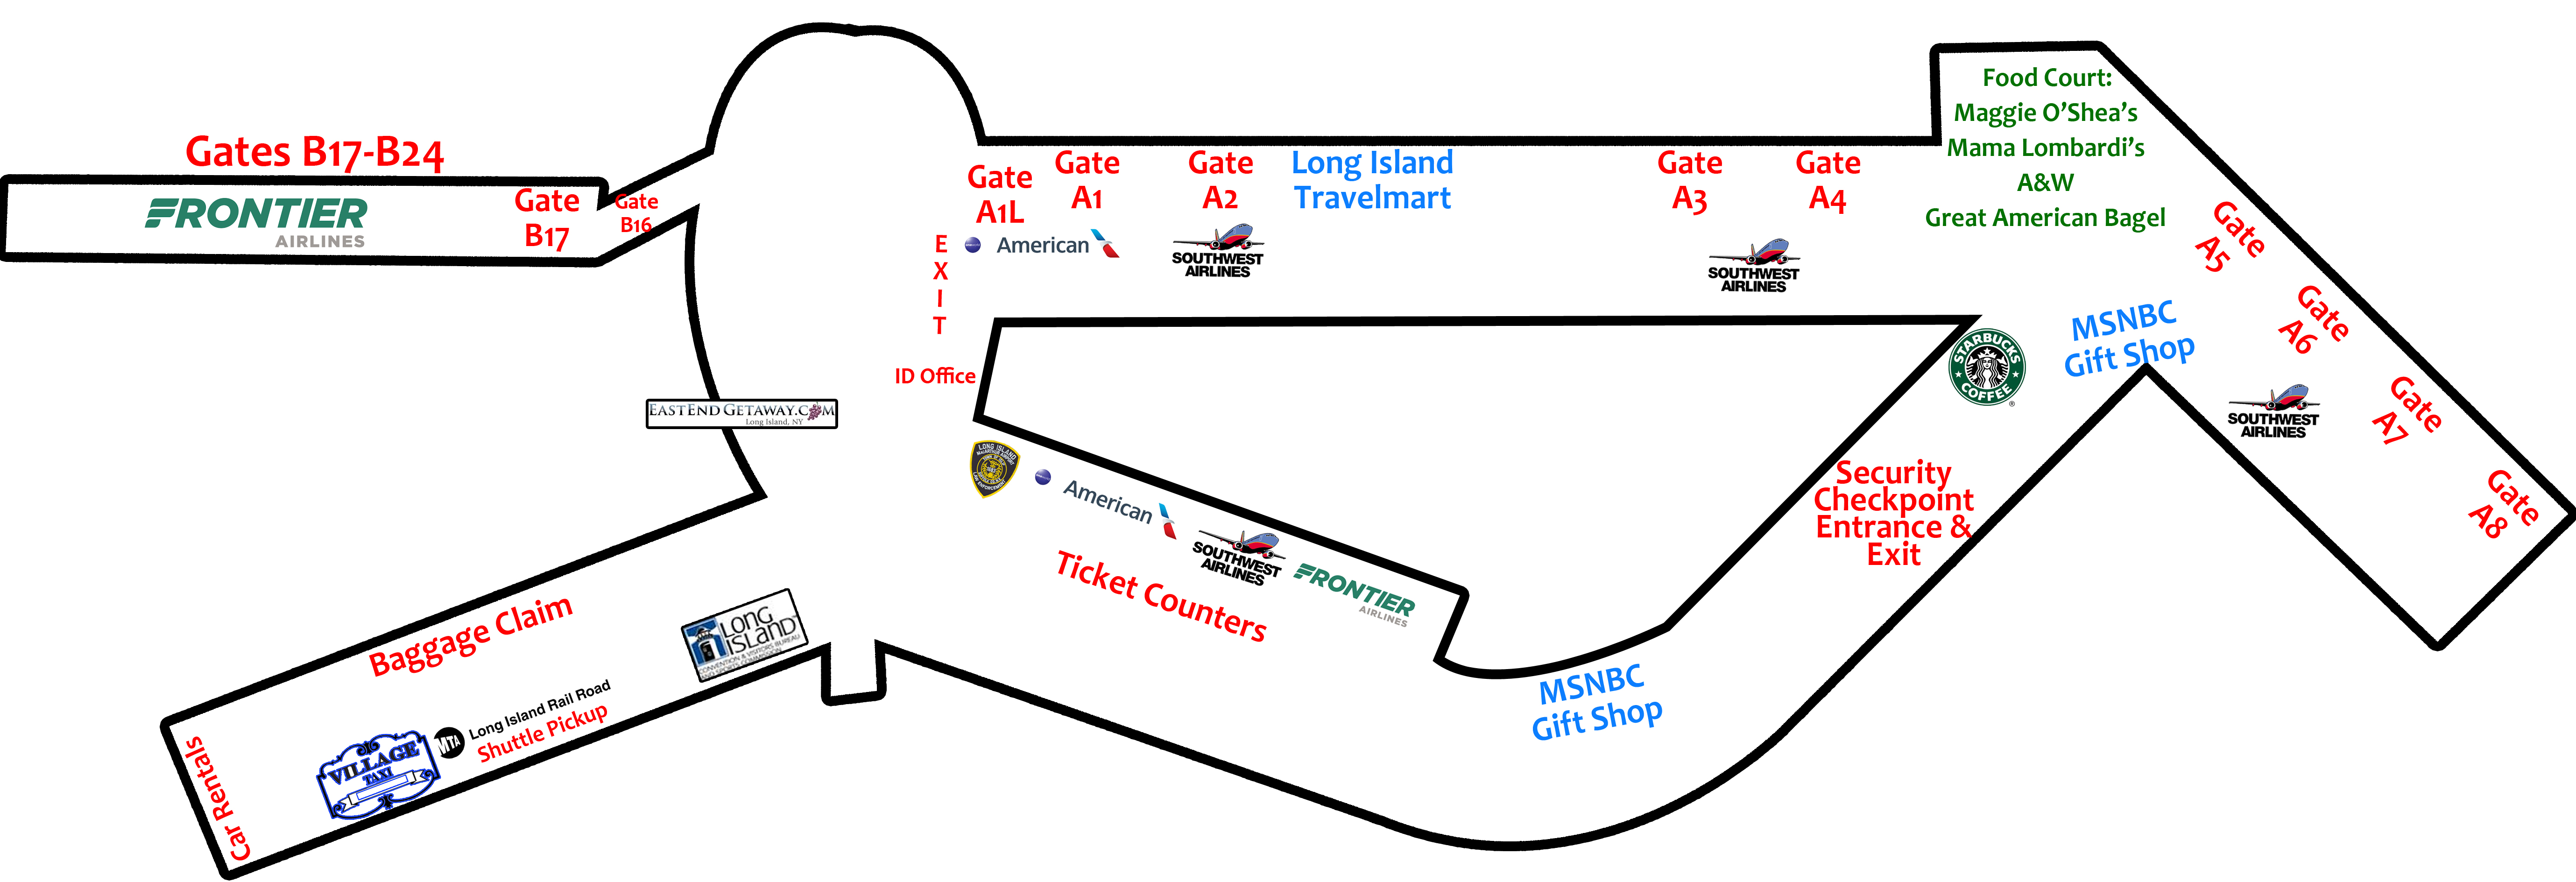 This Image Is a Map of the Airport Terminal With Landmarks Noted